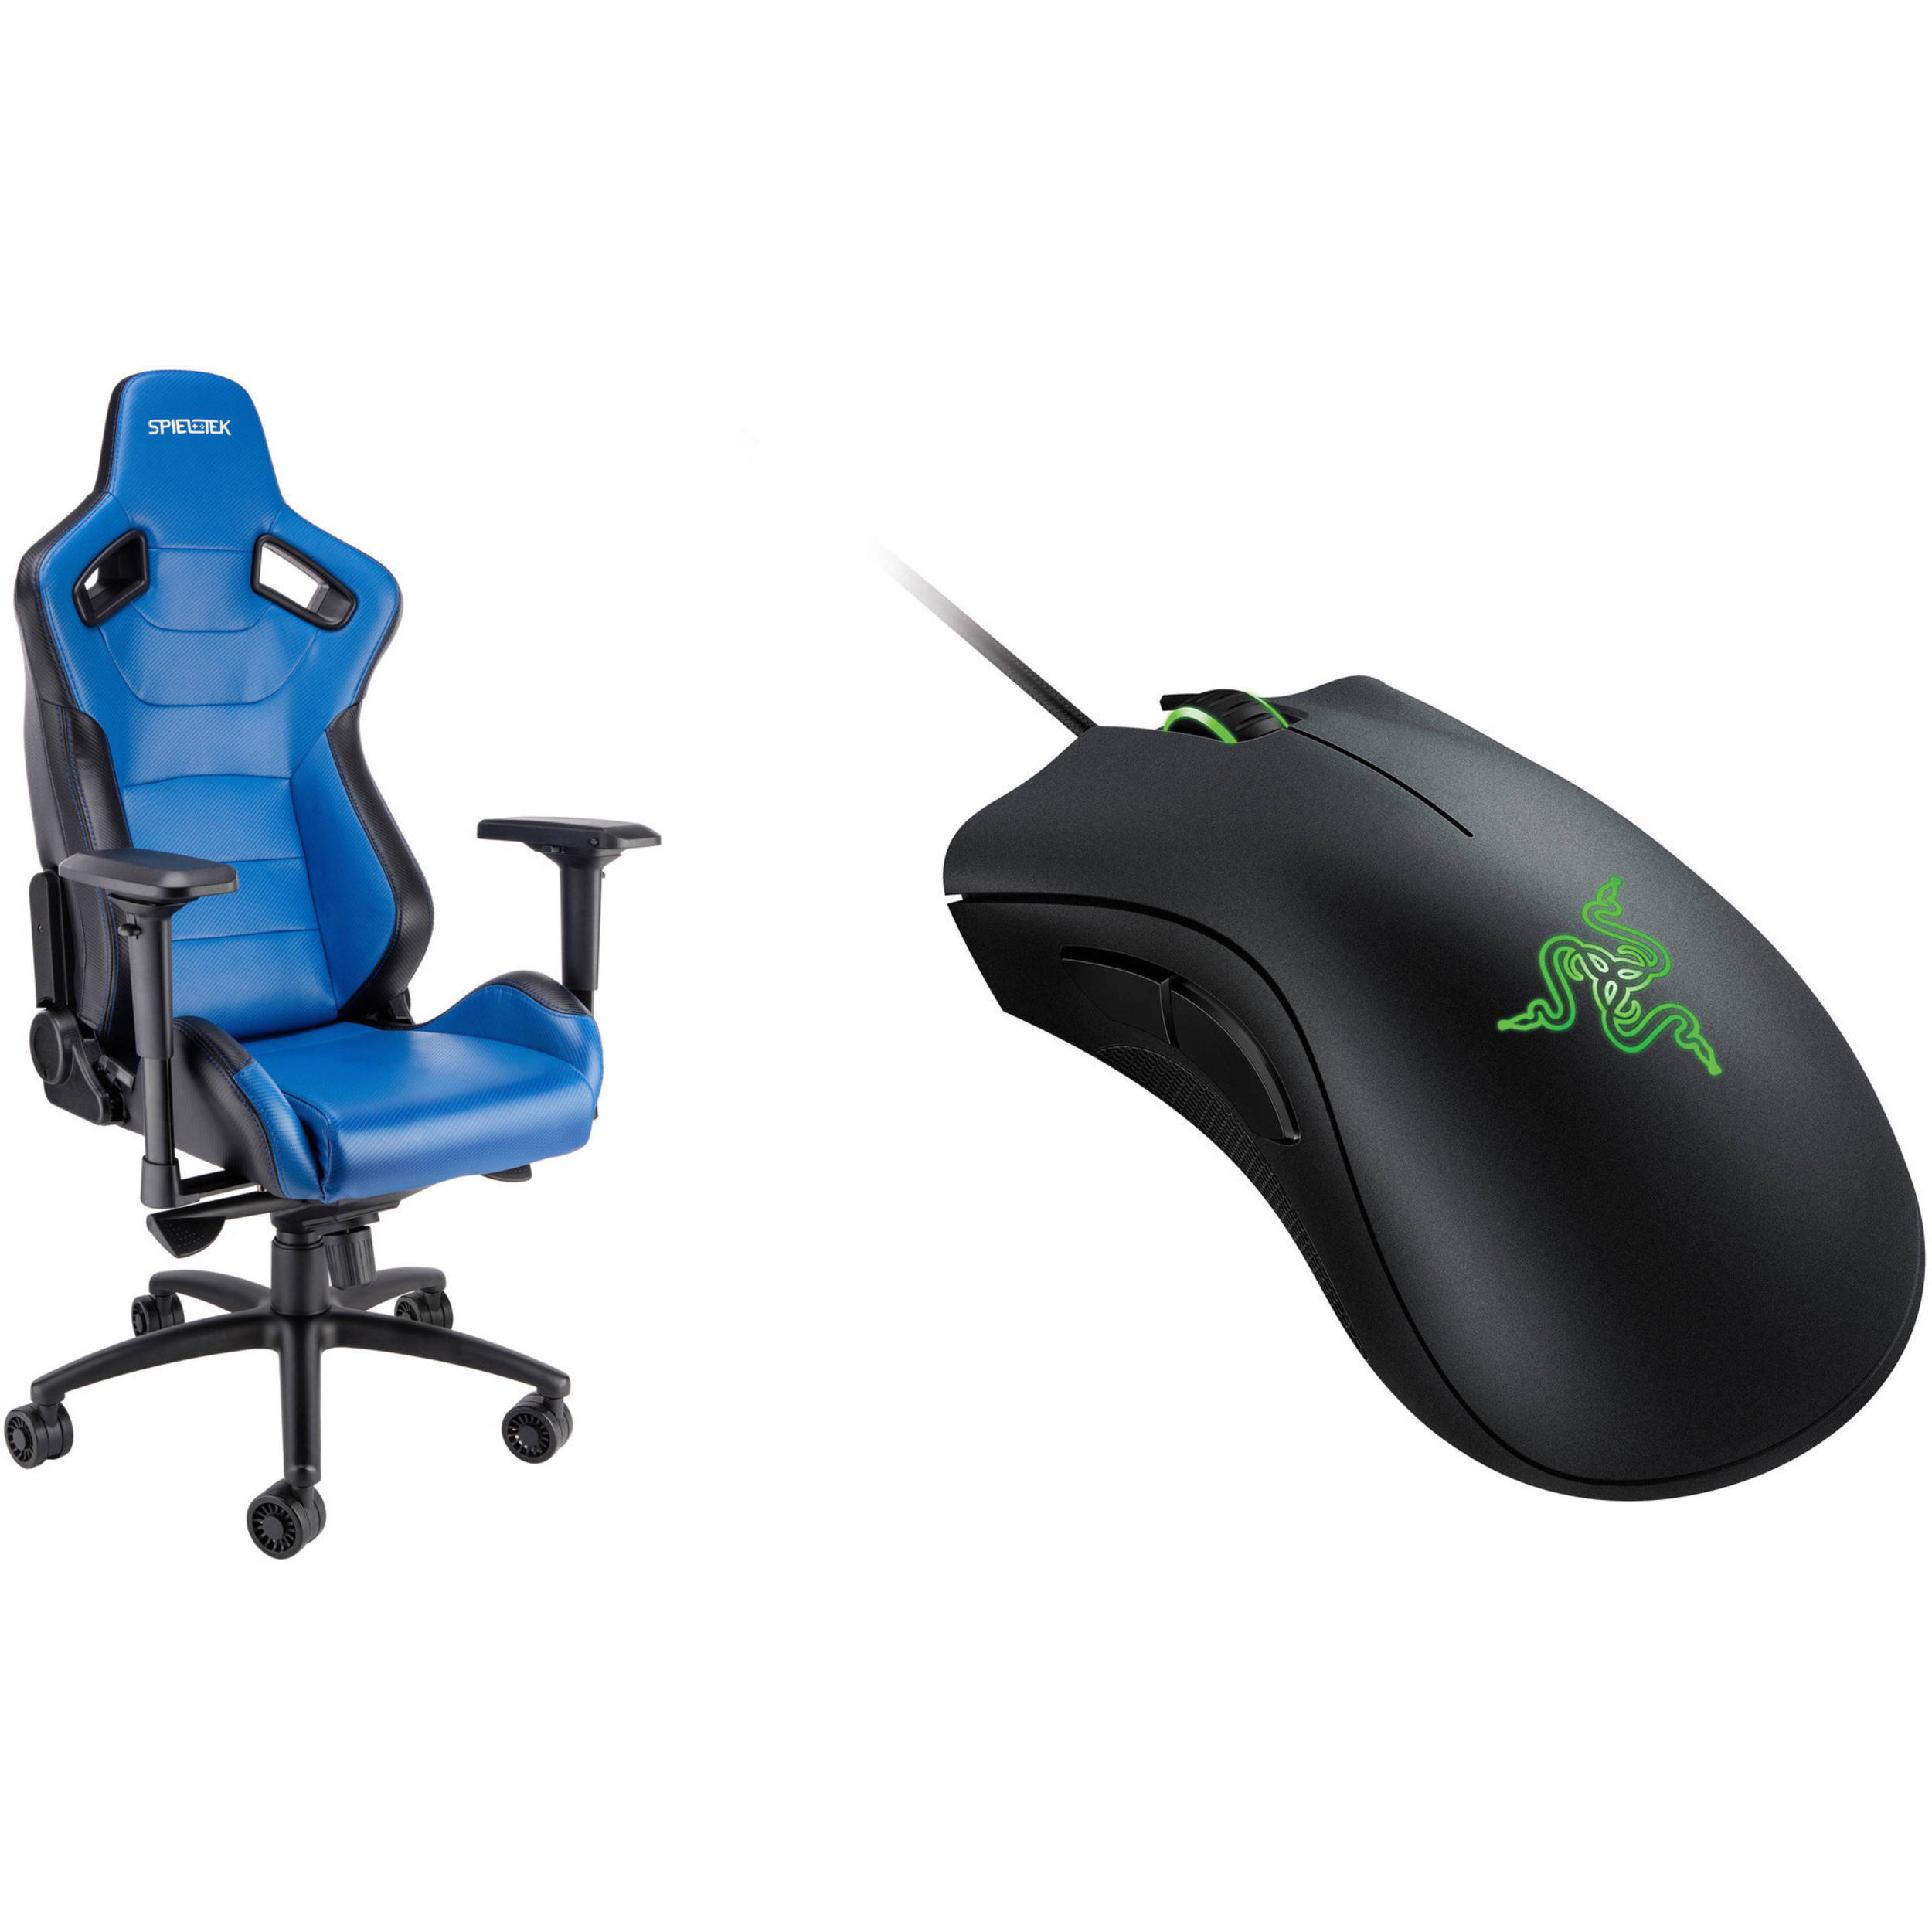 razer gaming chair 8 dining table sets spieltek admiral and deathadder b andh